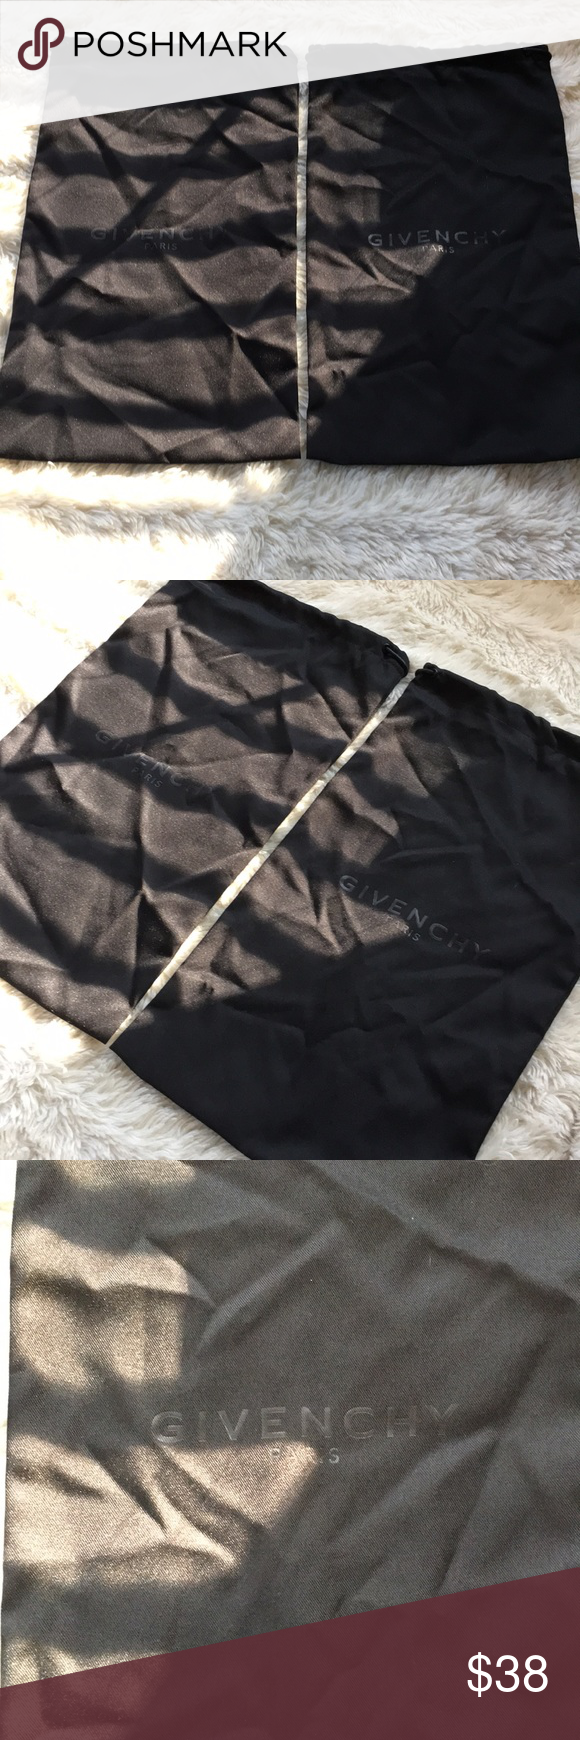 Givenchy shoes dust bags Great condition two black givenchy dust bag 15x8 Givenc Givenchy shoes dust bags Great condition two black givenchy dust bag 158 Givenchy Bags